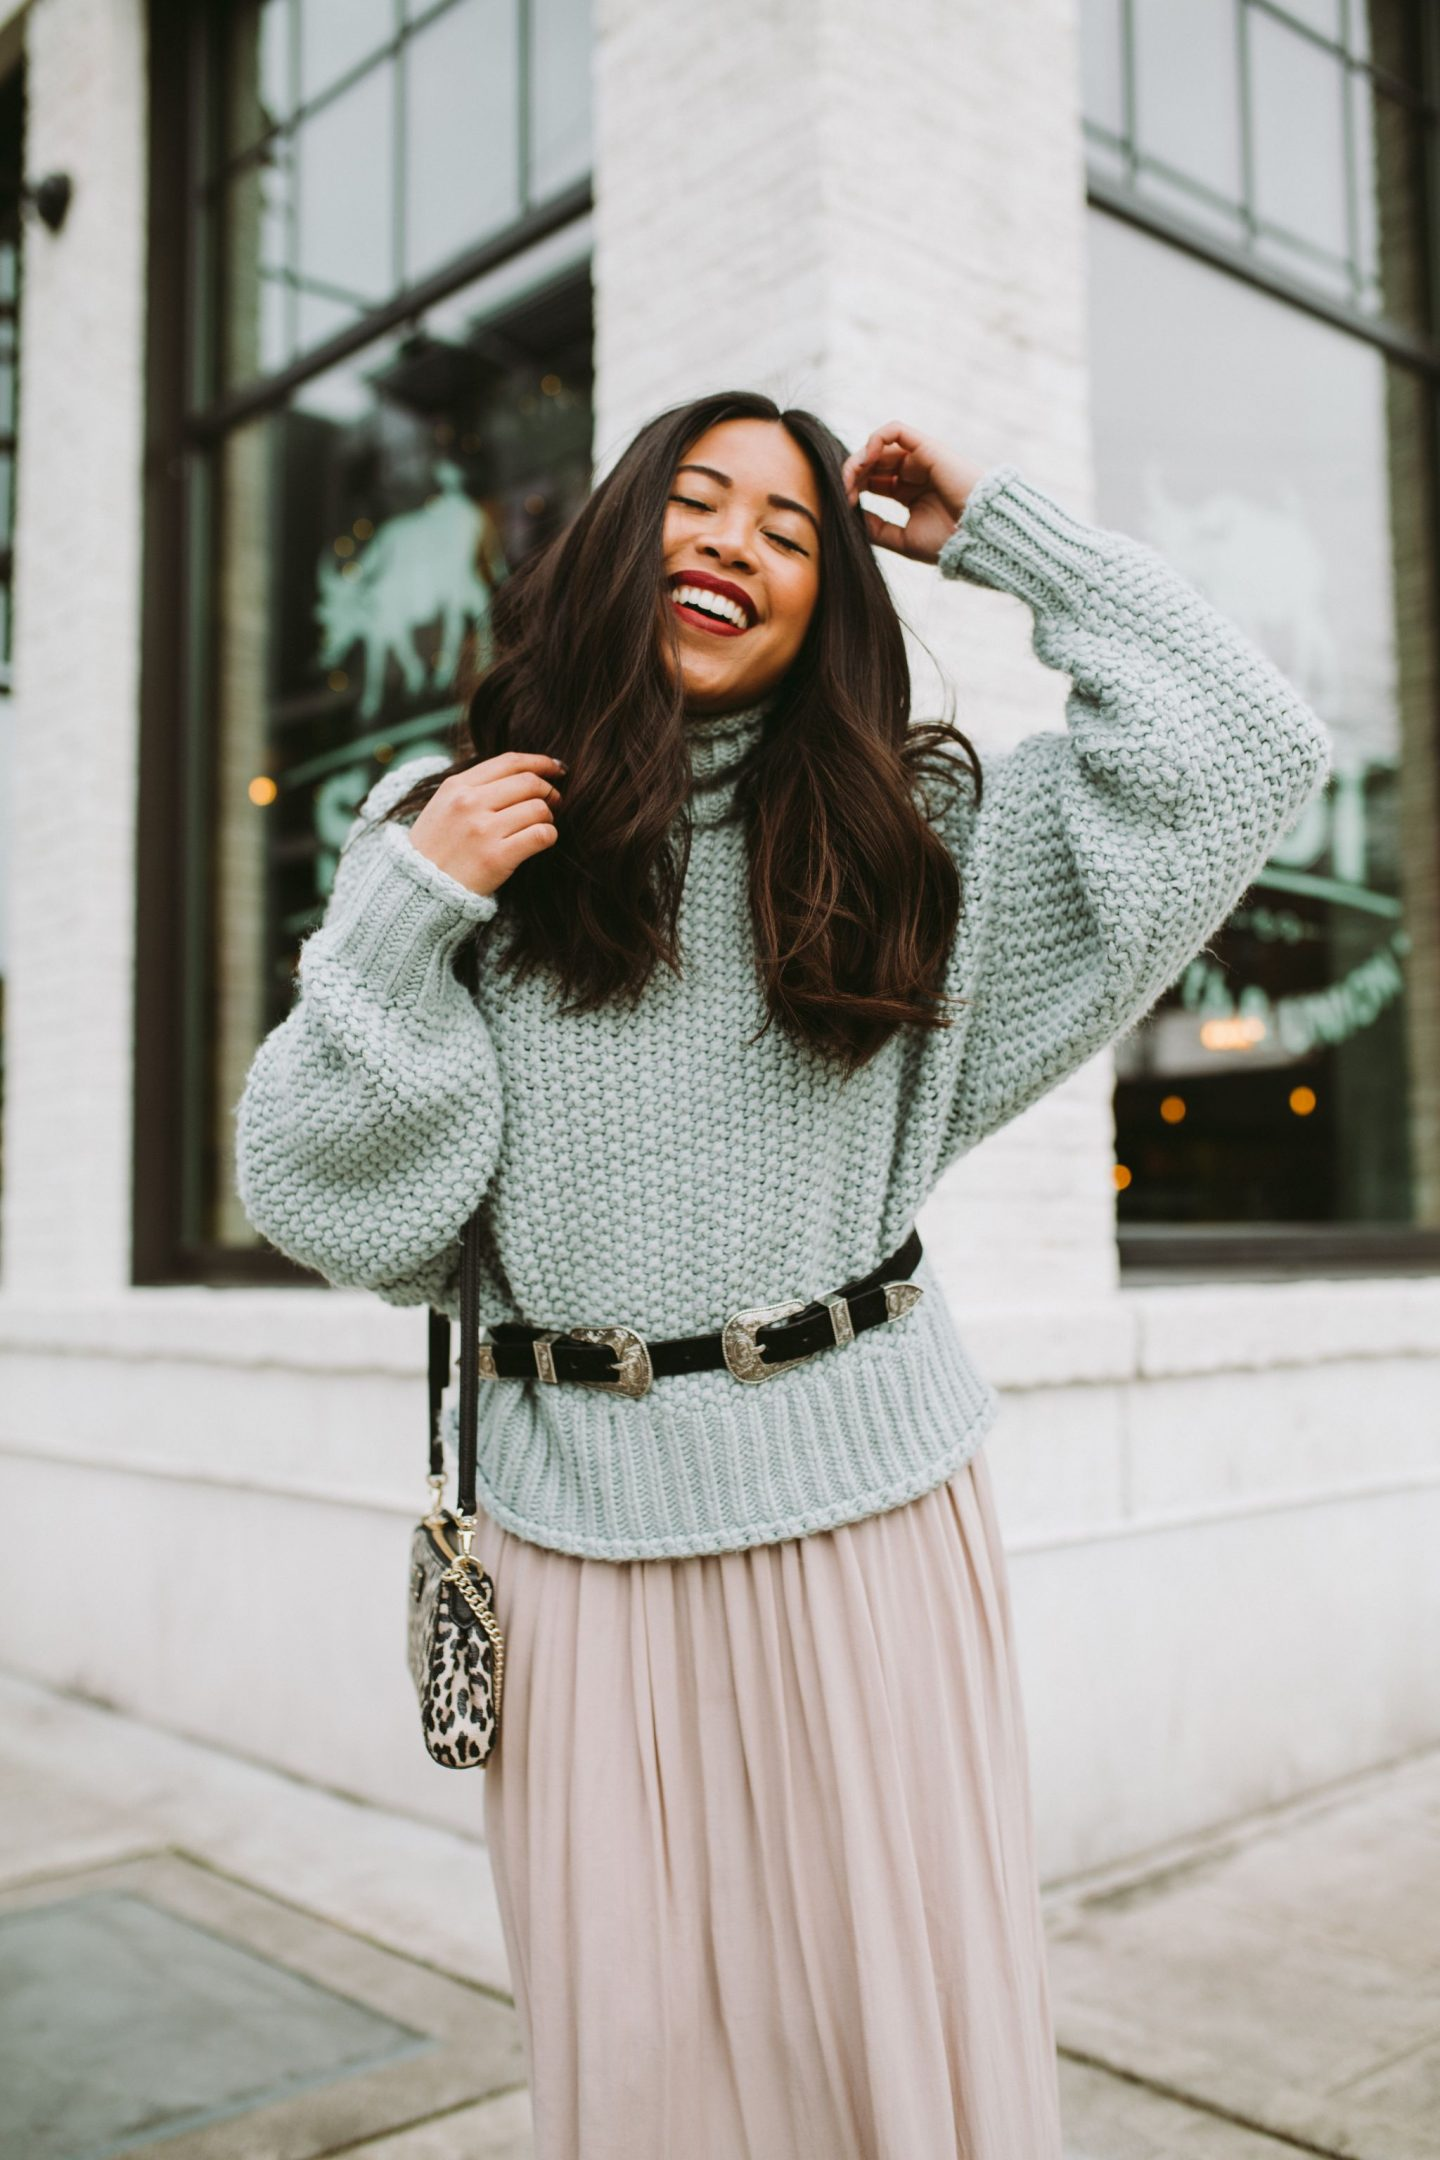 8 Stylish Winter Outfits to Wear in 2019